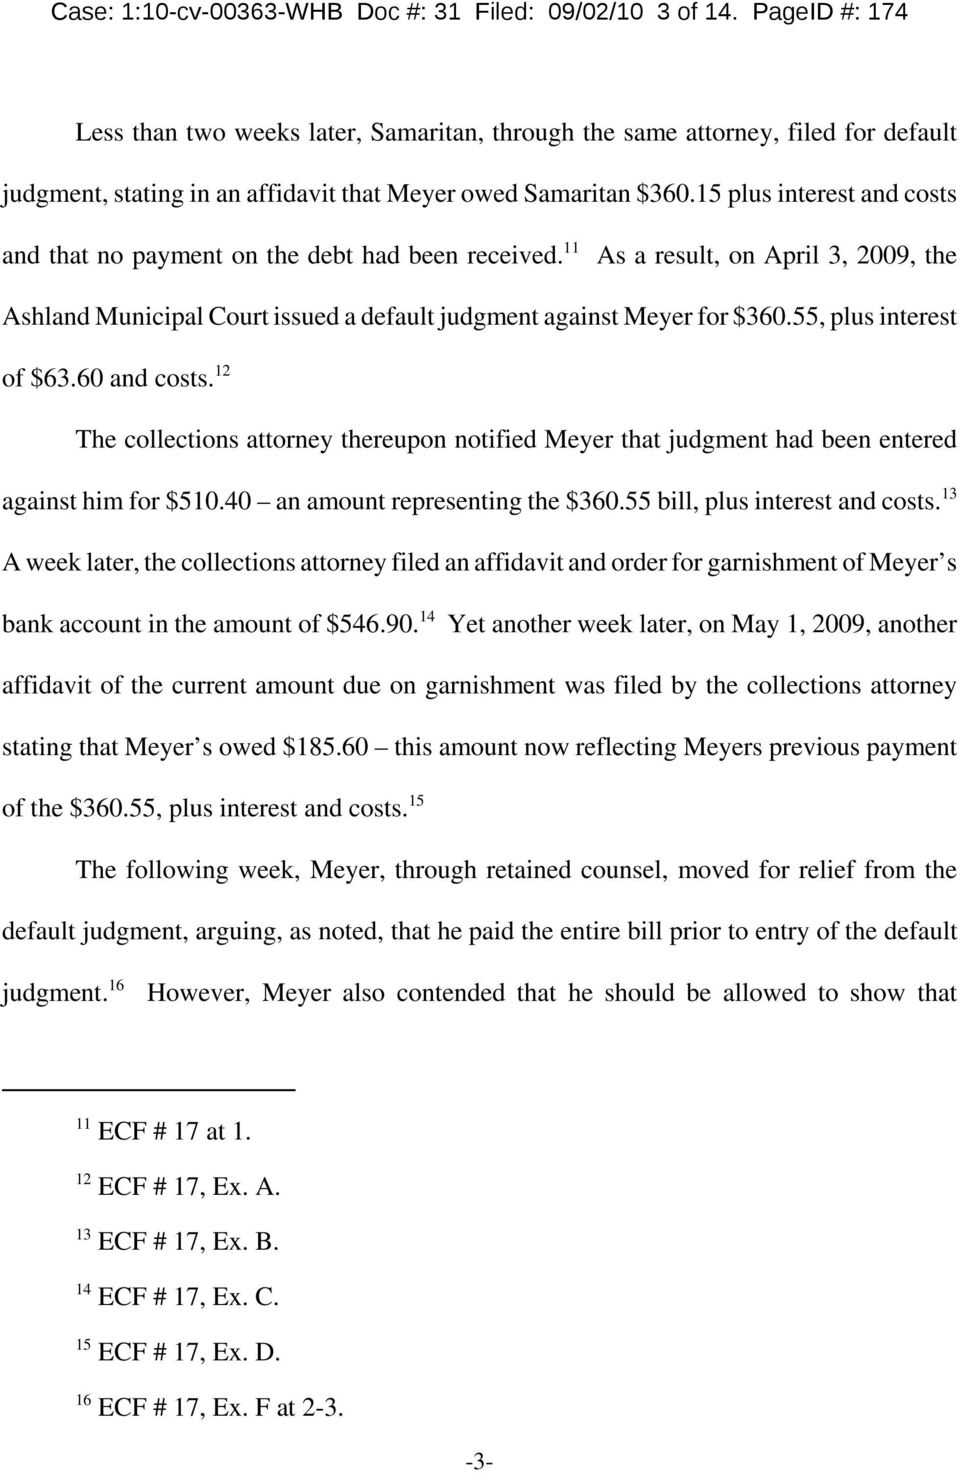 15 plus interest and costs and that no payment on the debt had been received. 11 As a result, on April 3, 2009, the Ashland Municipal Court issued a default judgment against Meyer for $360.